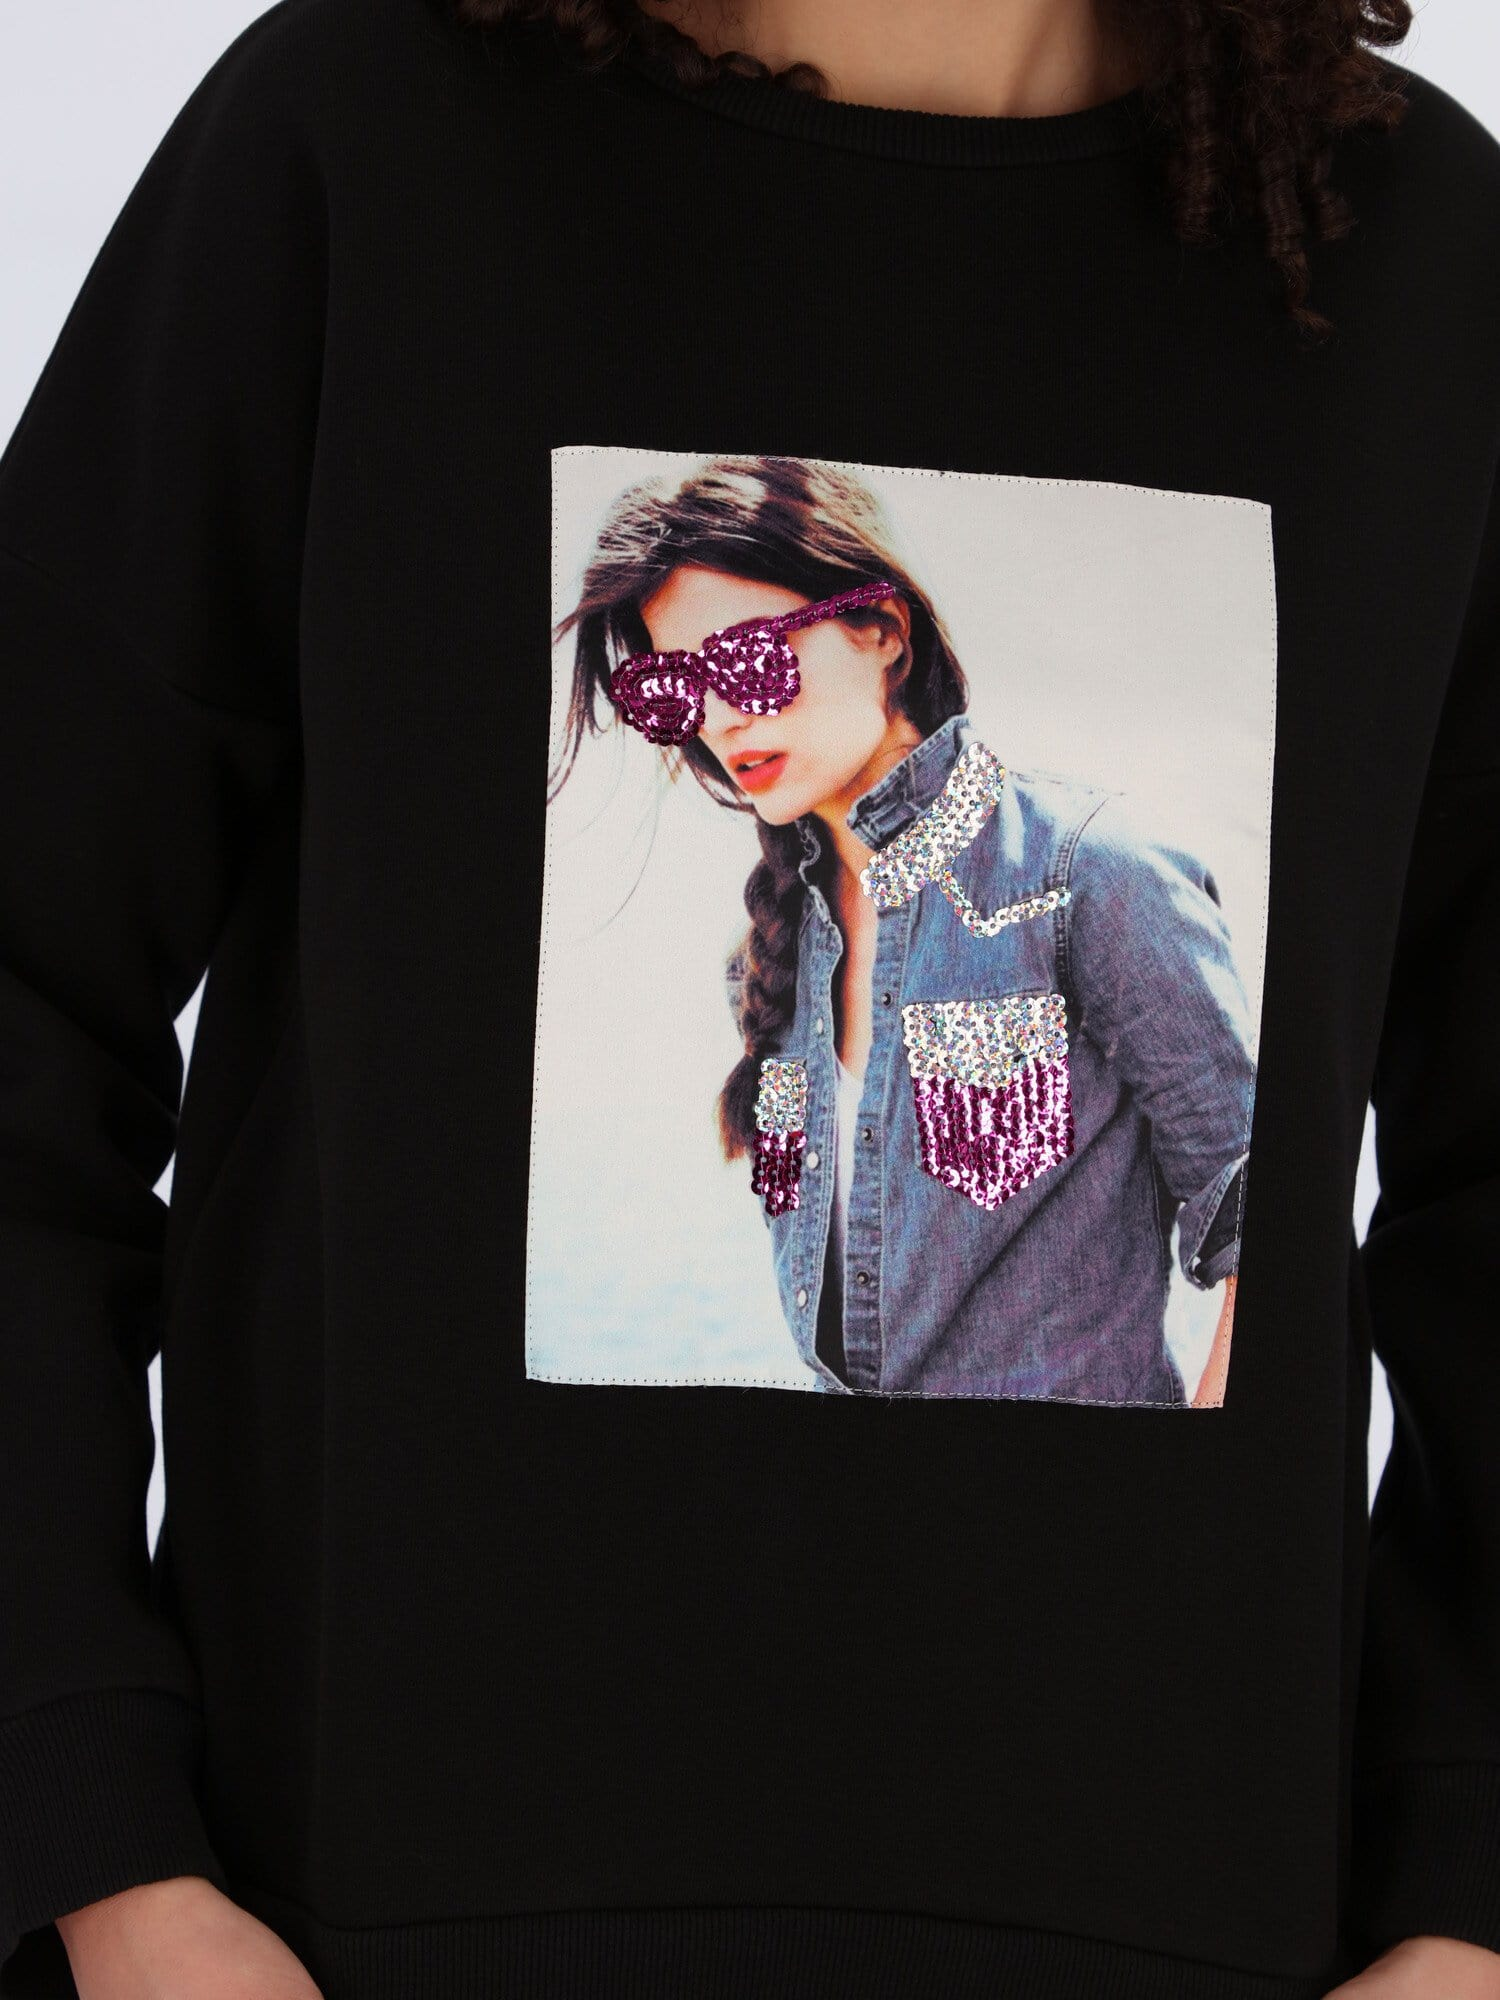 OR Sweatshirts & Hoodies Black / S Lady with Glasses Printed Sweatshirt